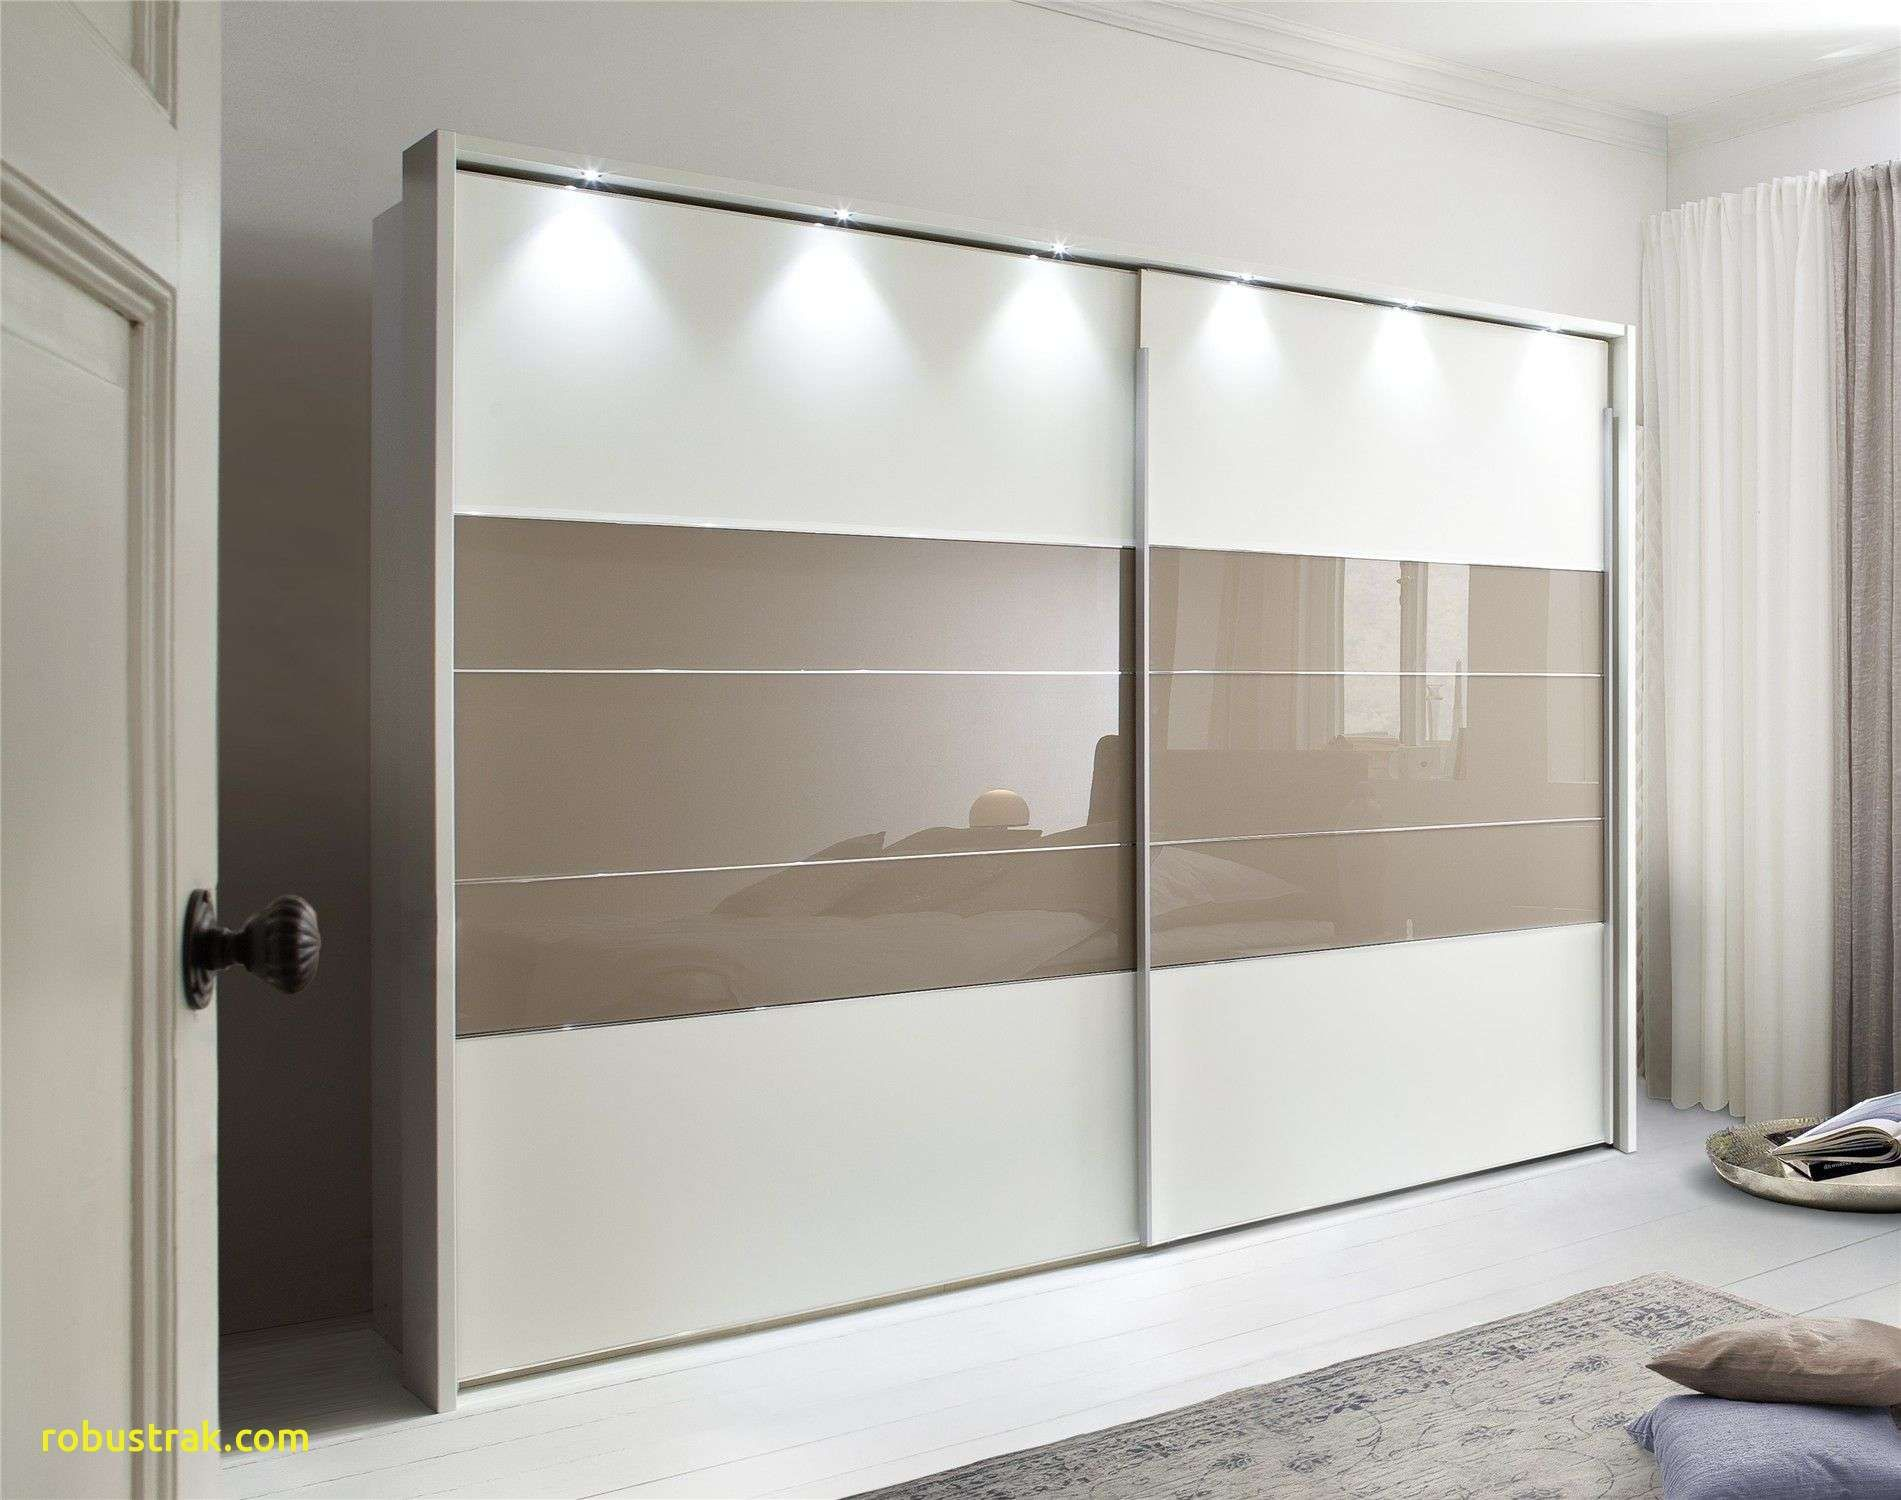 Wardrobe Mirror Sliding Doors Album Christmas